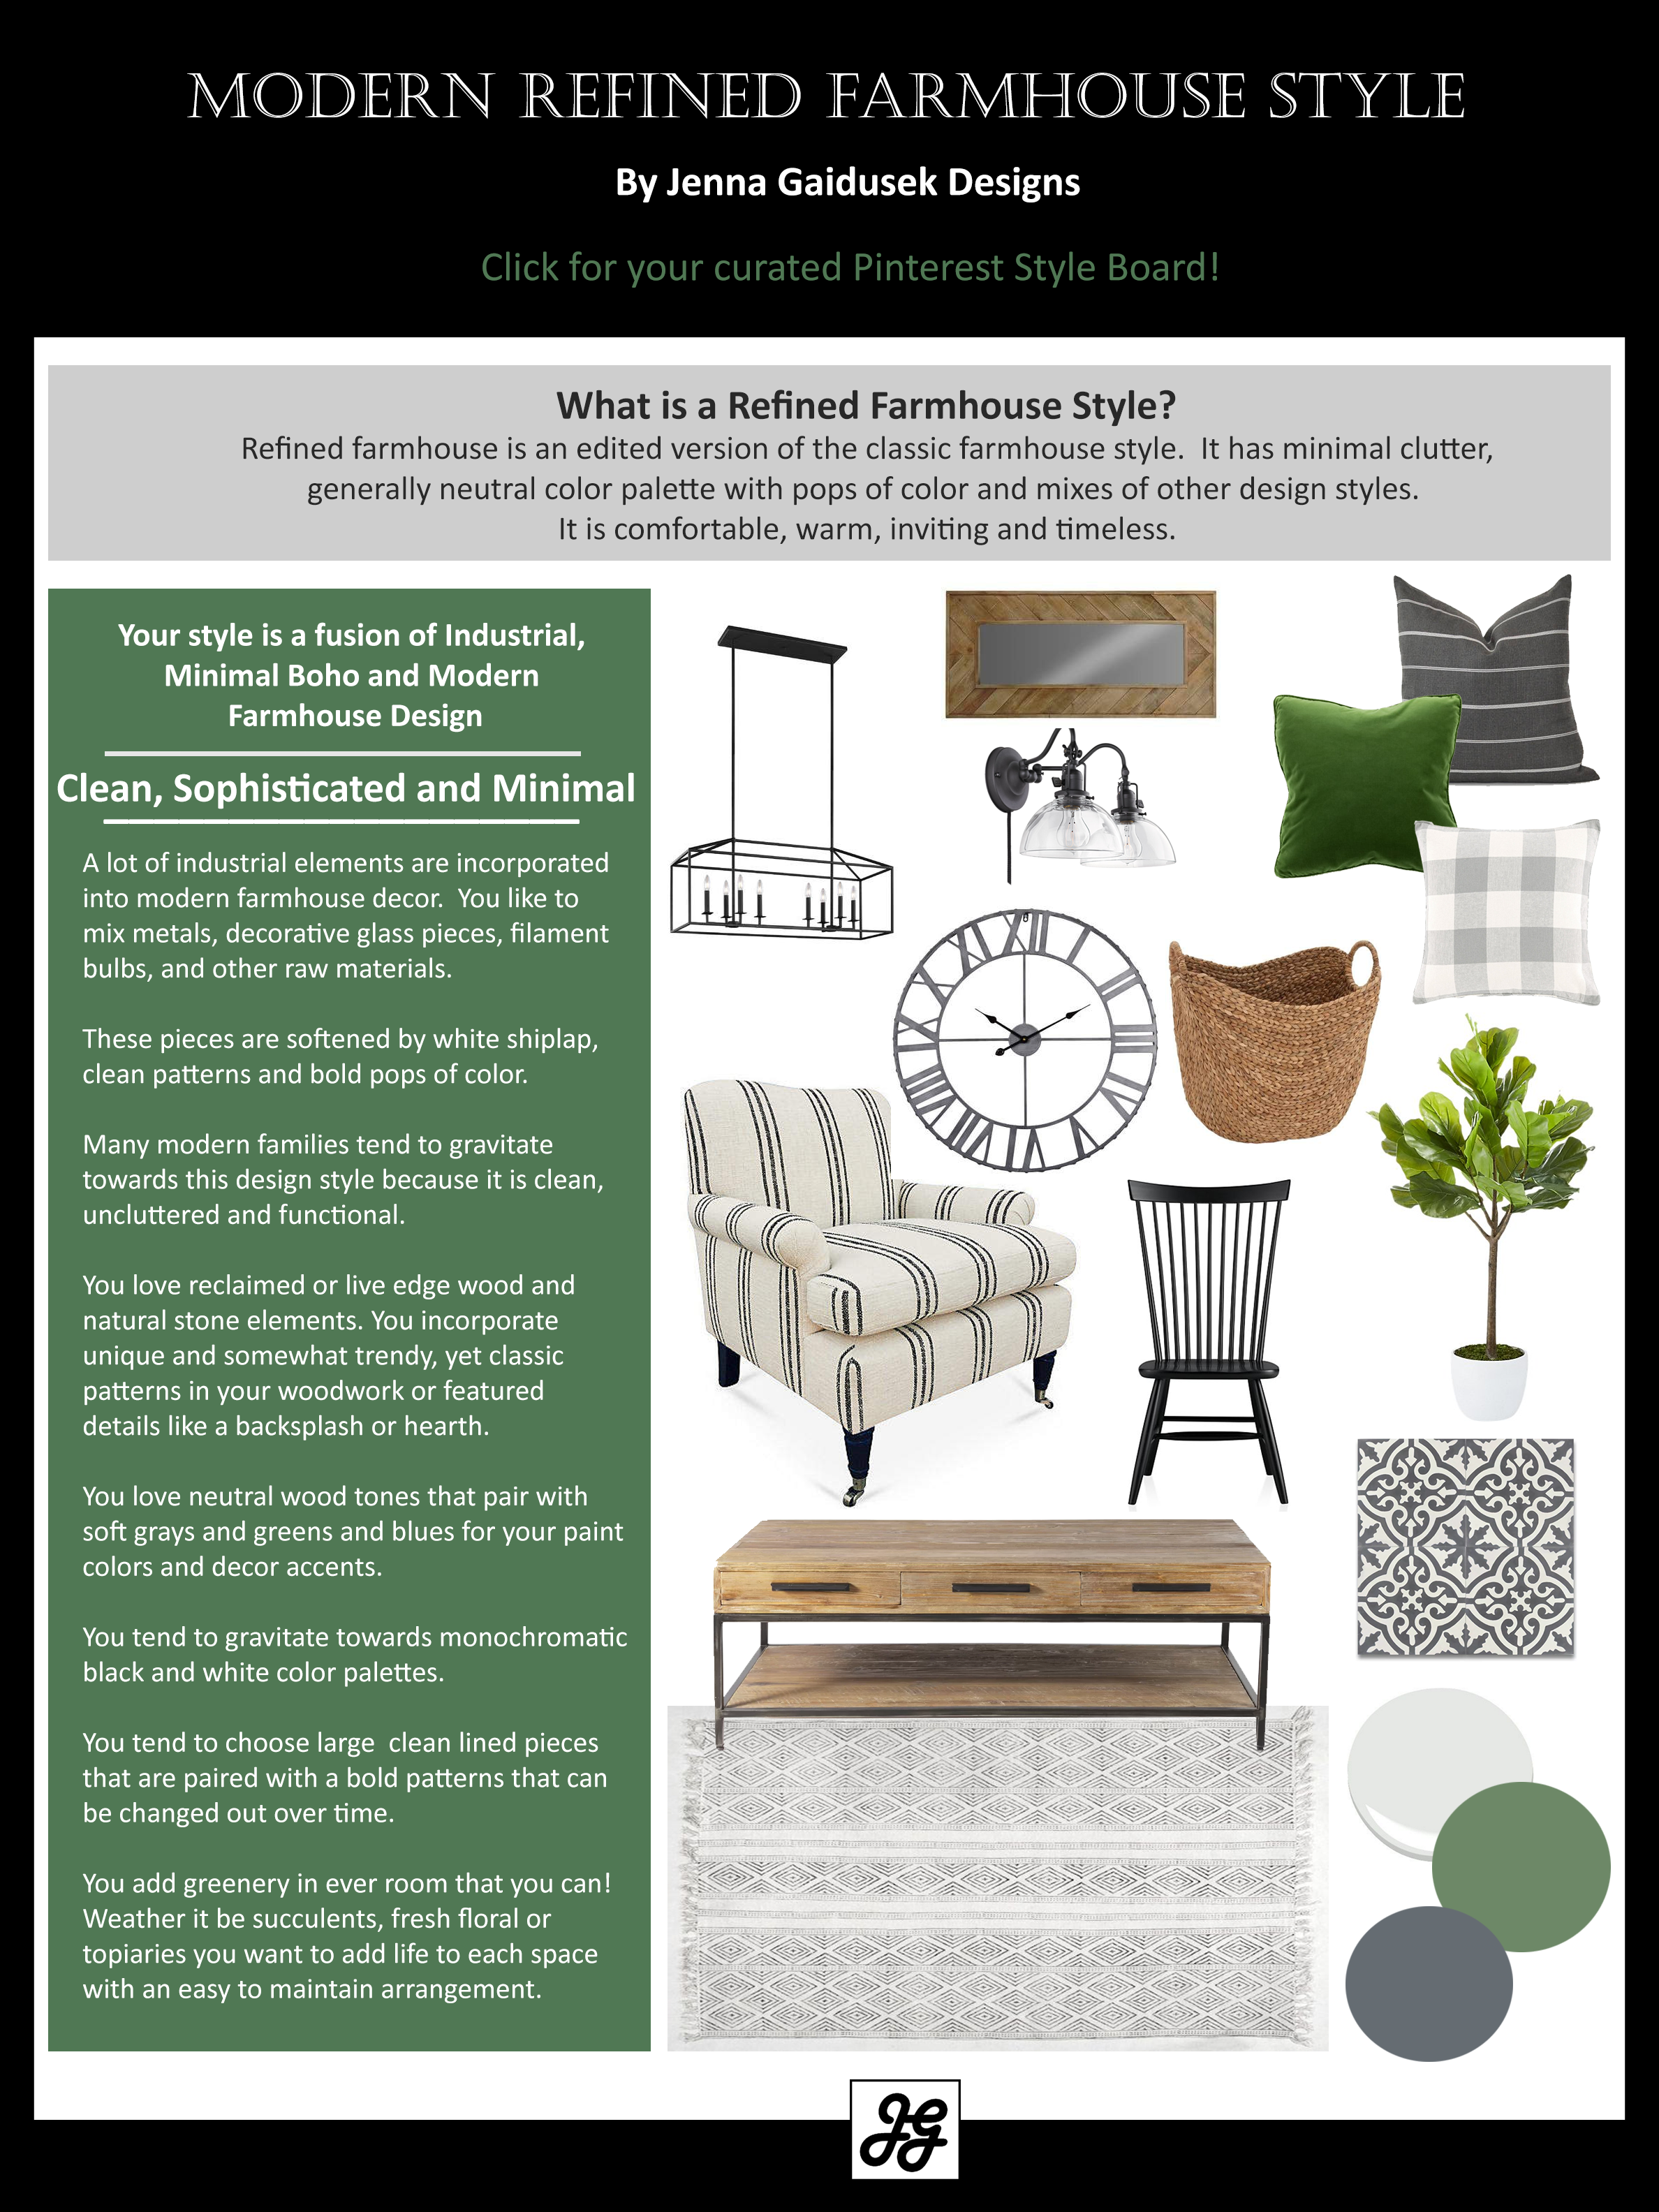 Style Quiz- Modern Farmhouse Style Find Out What Farmhouse Style You Are! IS Your Style More Coa…   Modern Farmhouse Style, Farmhouse Style, Modern Farmhouse Design